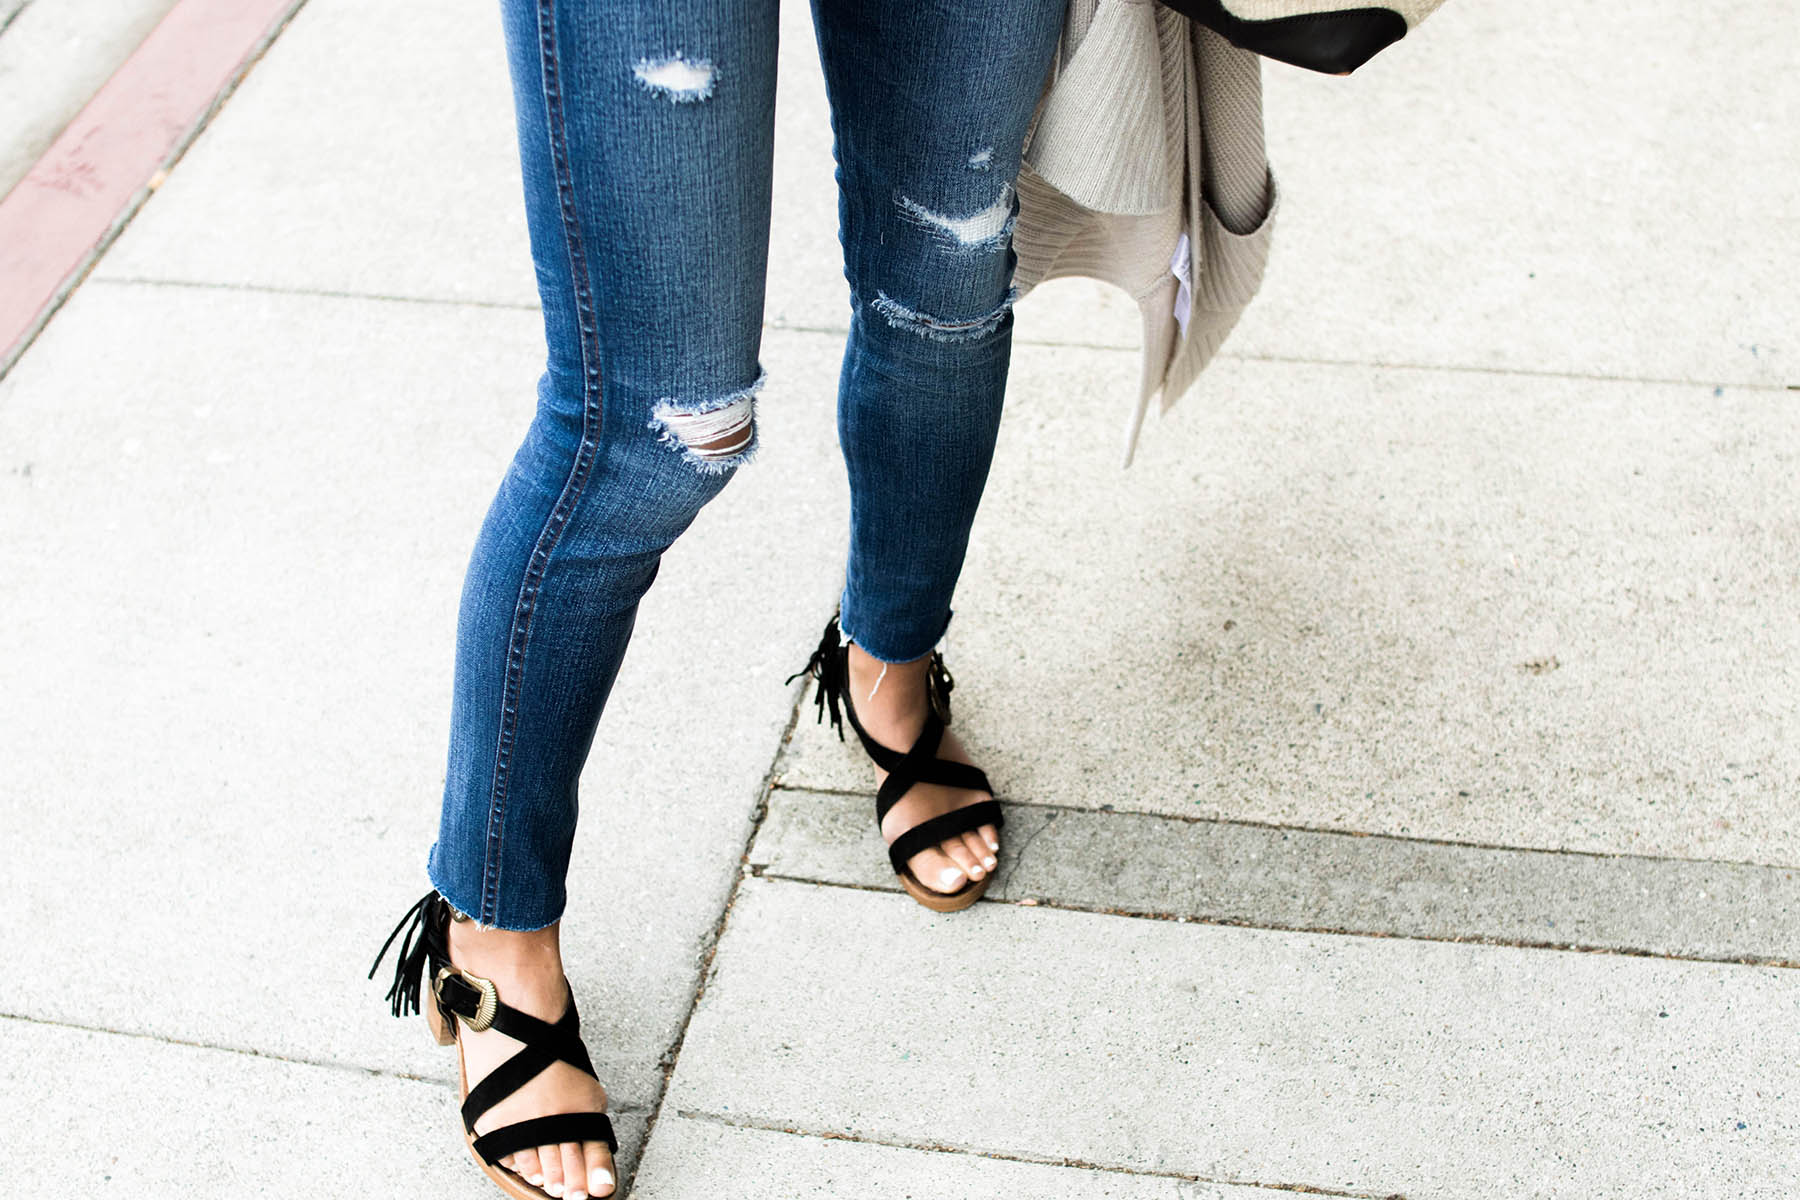 madewell distressed skinny jeans and matisse sandals